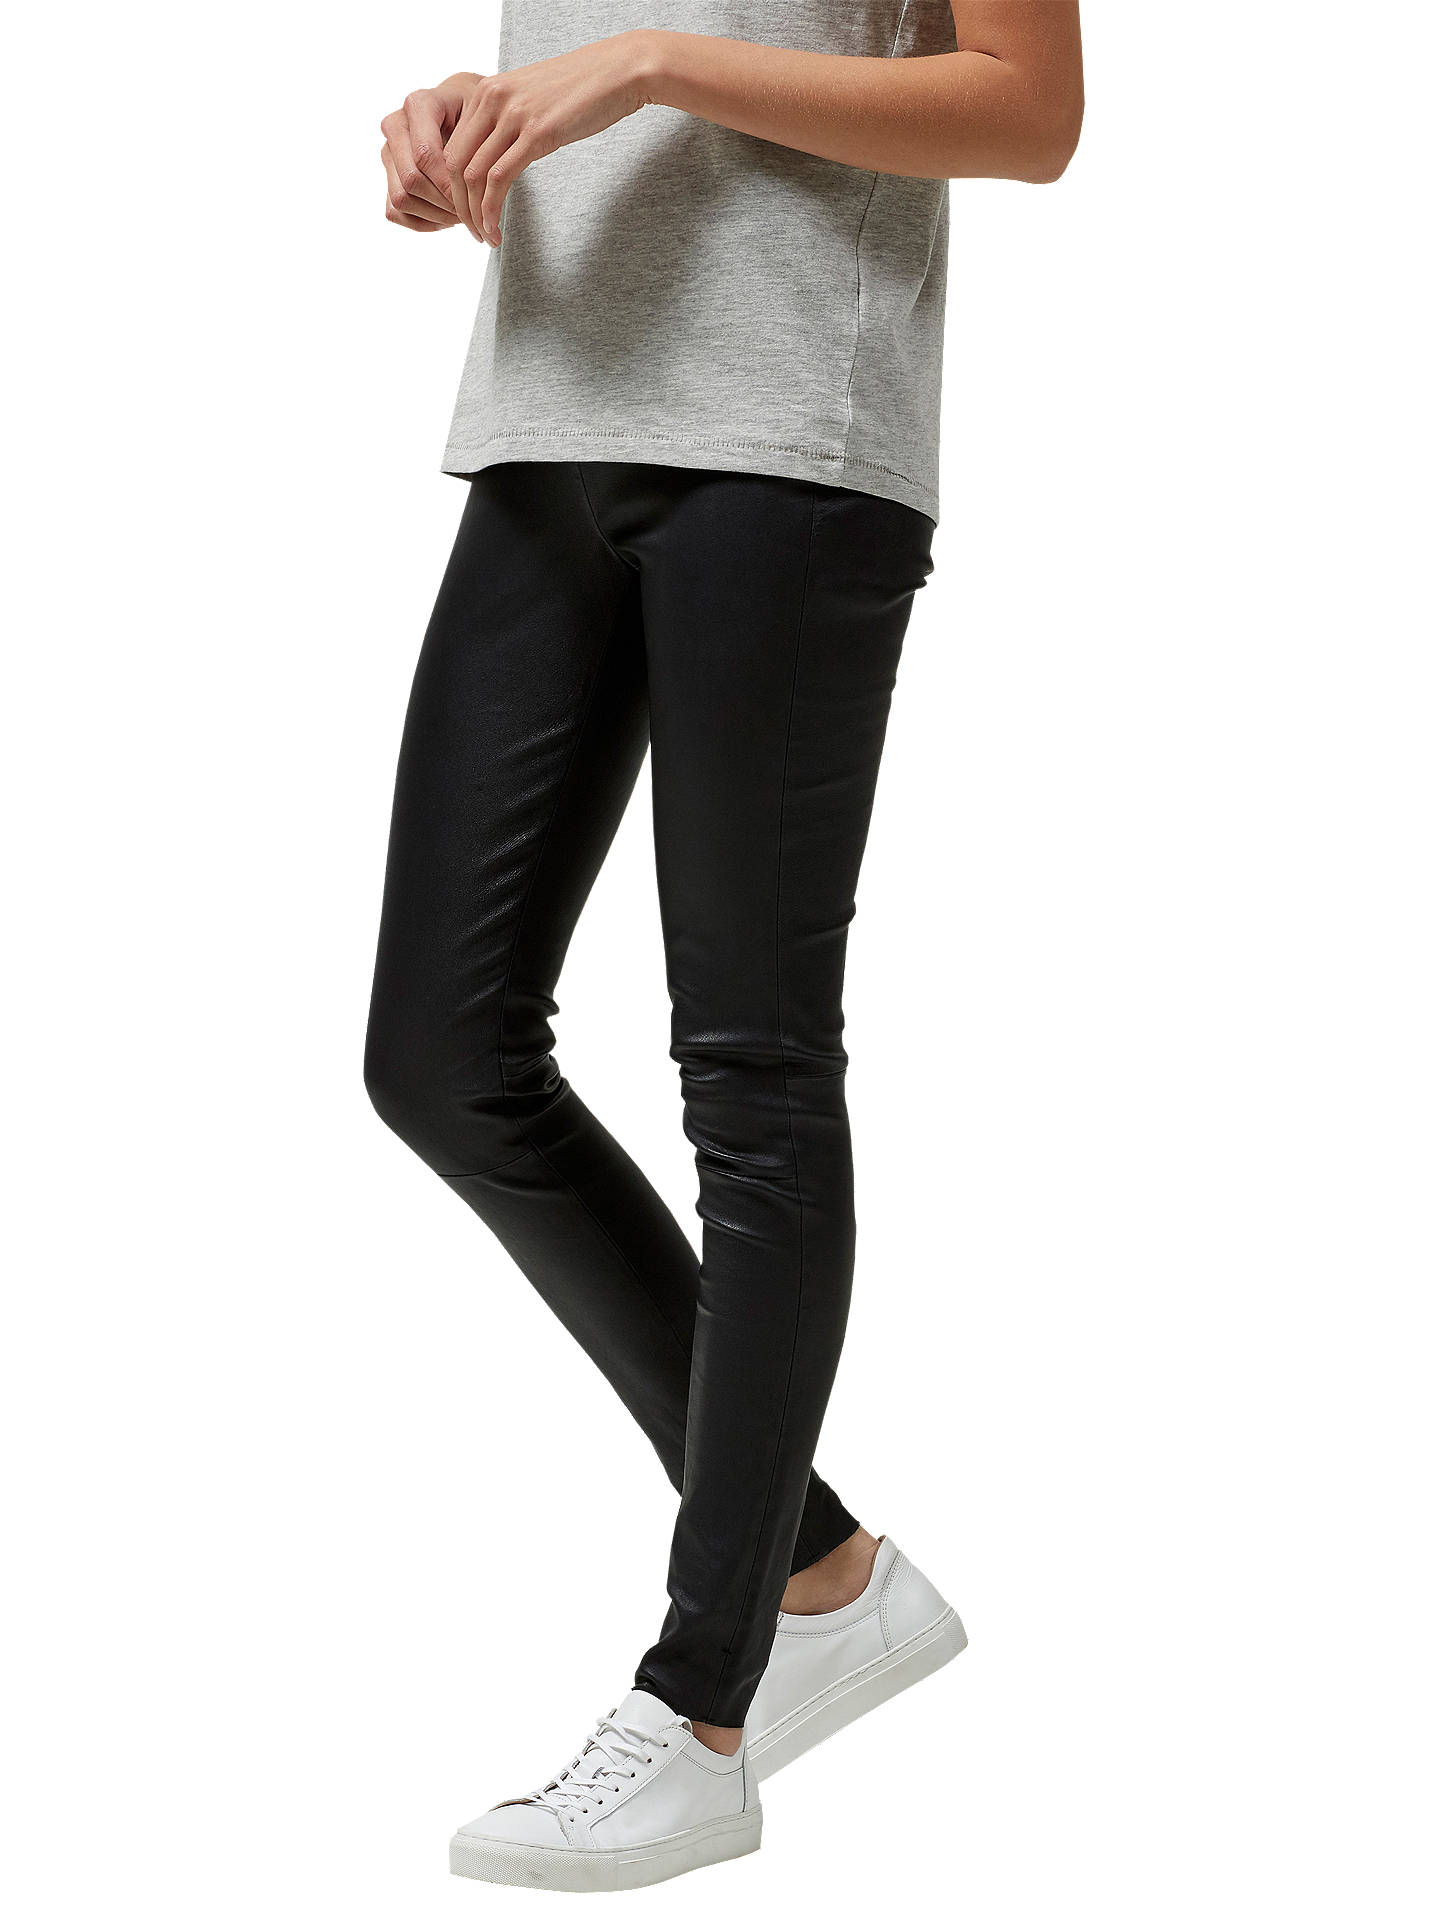 5eb21dde99ea1 Buy Selected Femme Silvia Slim Fit Leather Leggings, Black, 8 Online at  johnlewis.